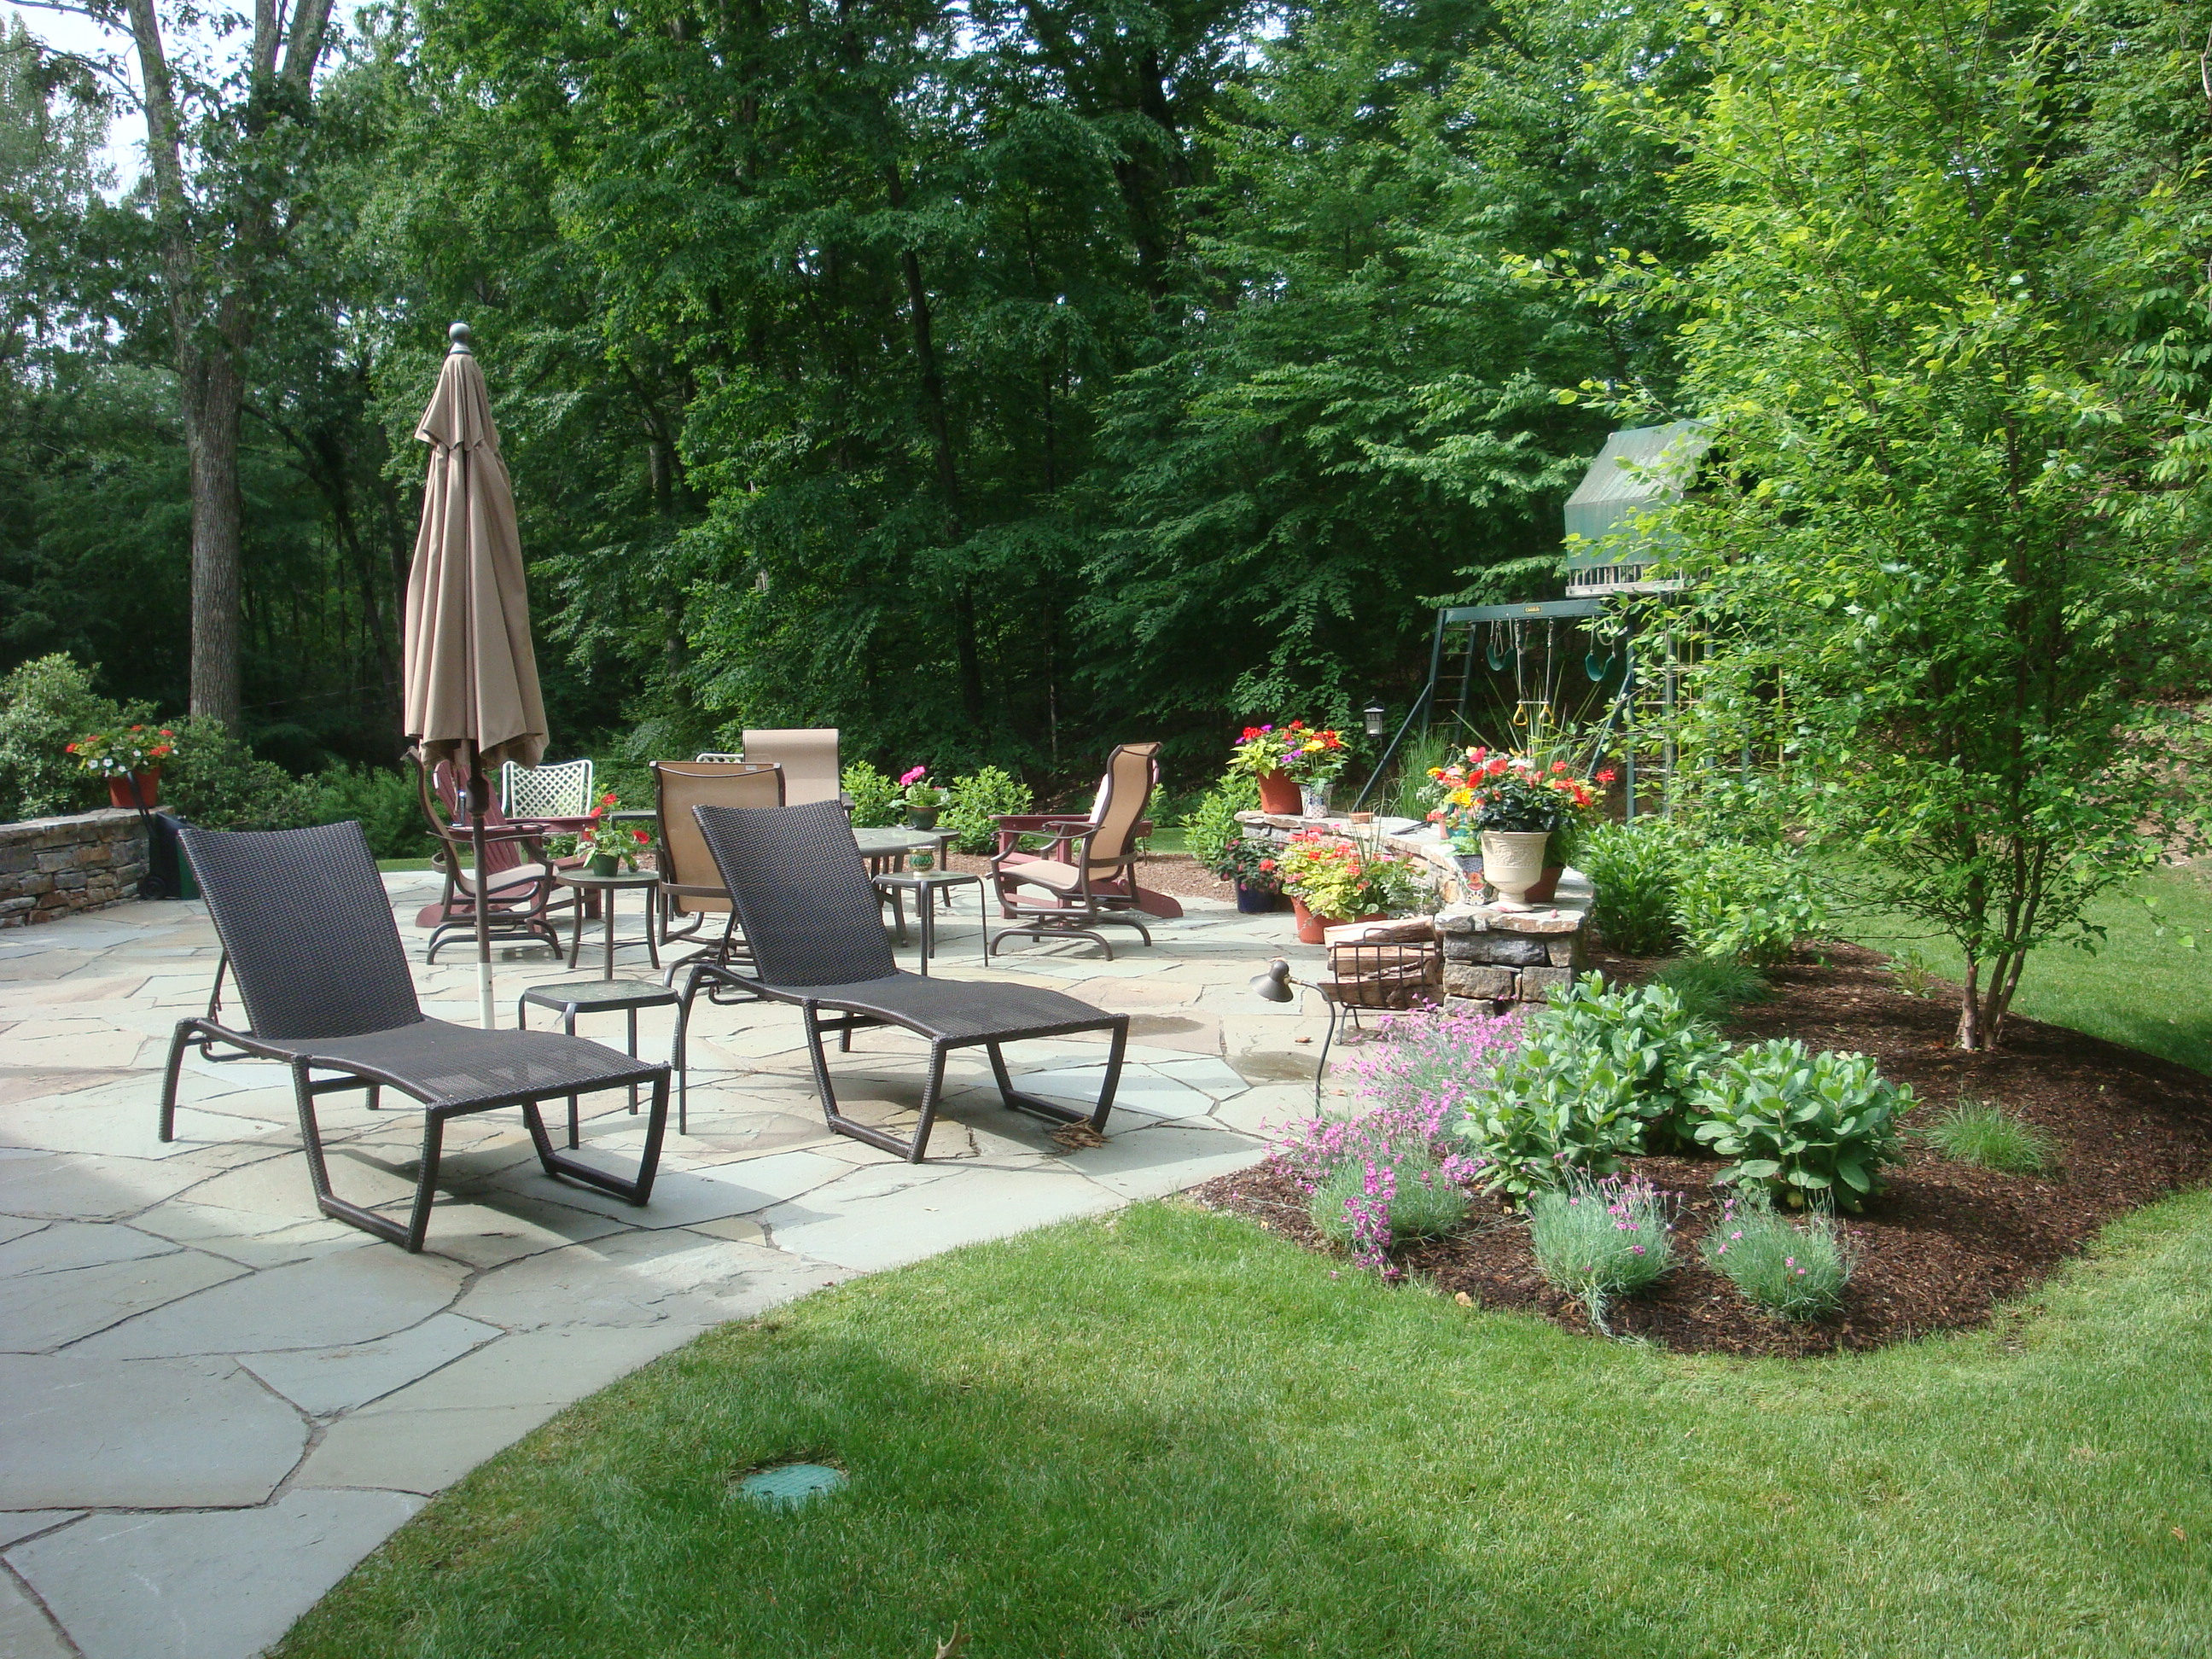 Patios garden designers roundtable for Outdoor garden designs